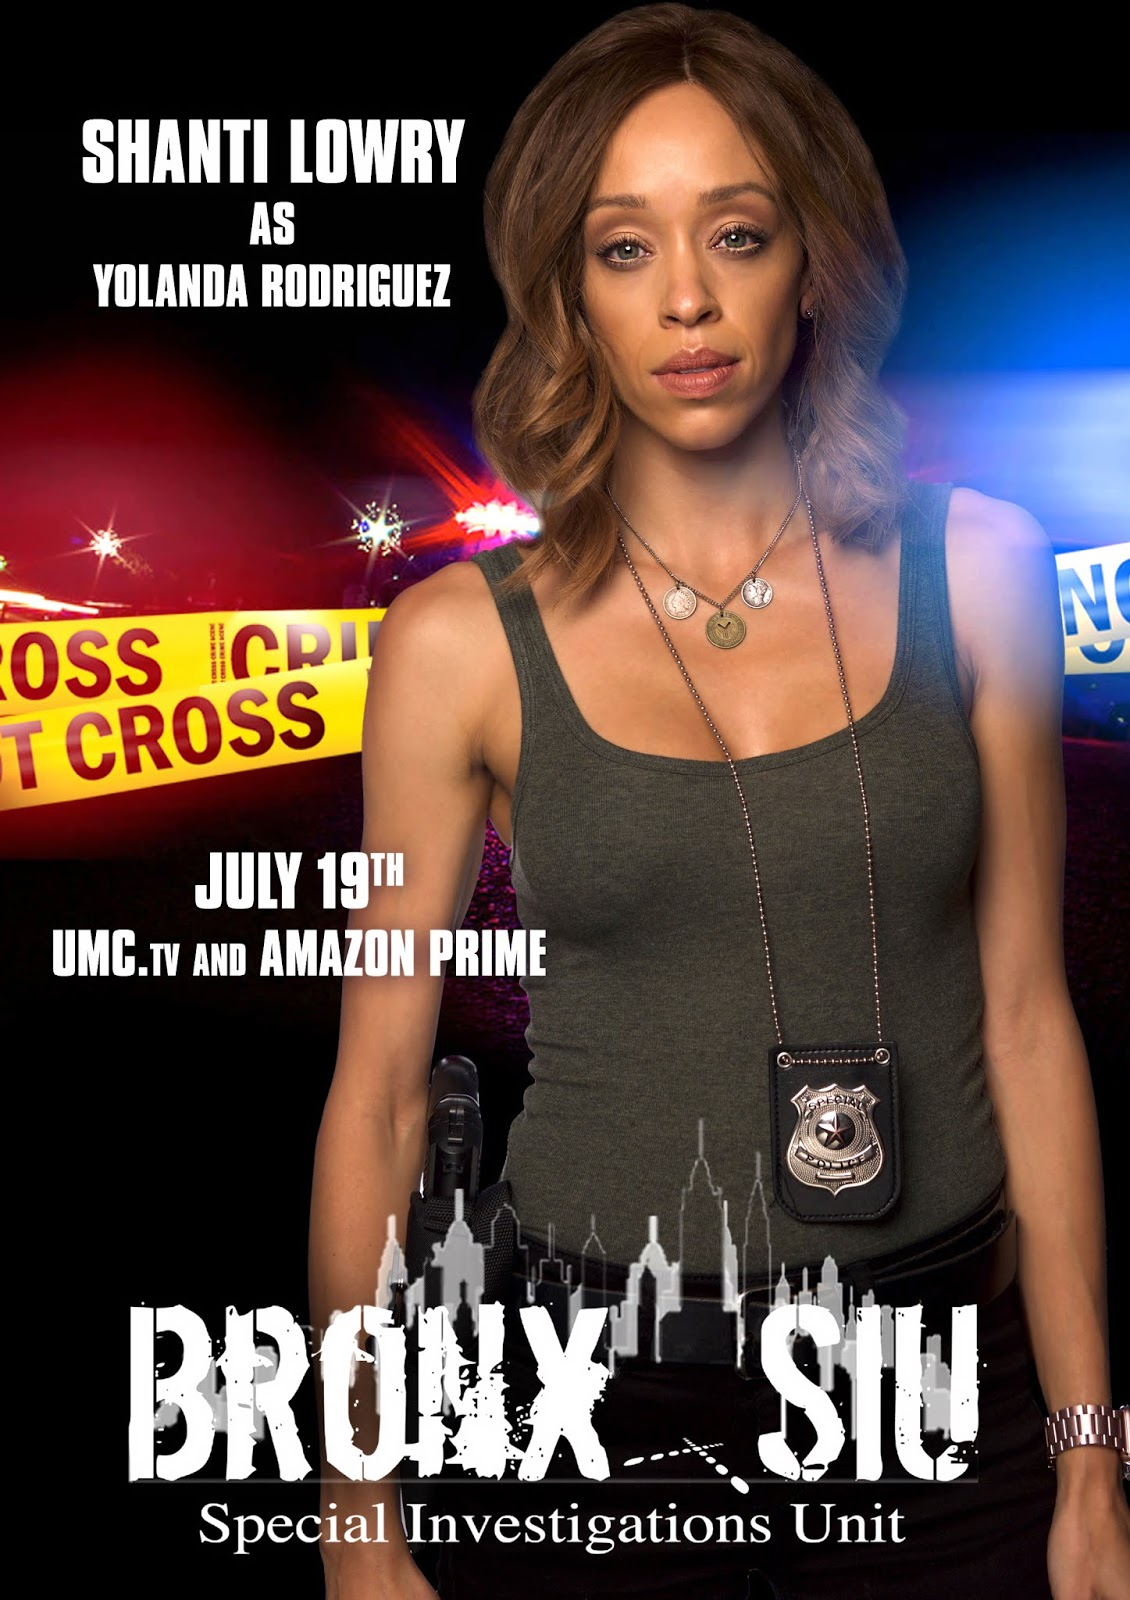 Interviews: Actress Shanti Lowry Talks About The New Police Procedural Series Bronx SIU